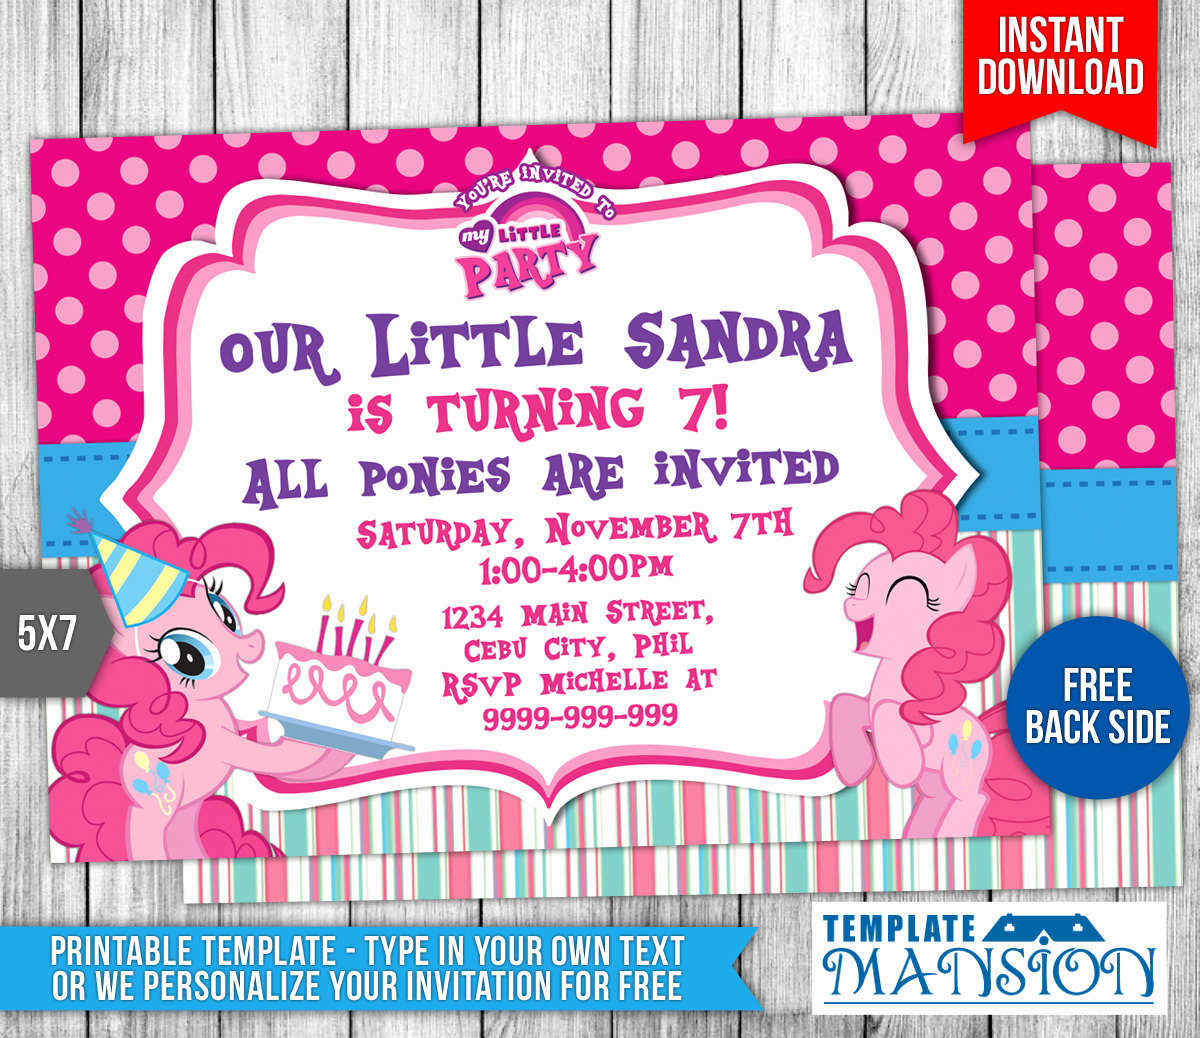 My Little Pony Invitation Template Beautiful My Little Pony Birthday Invitation Template 3 by